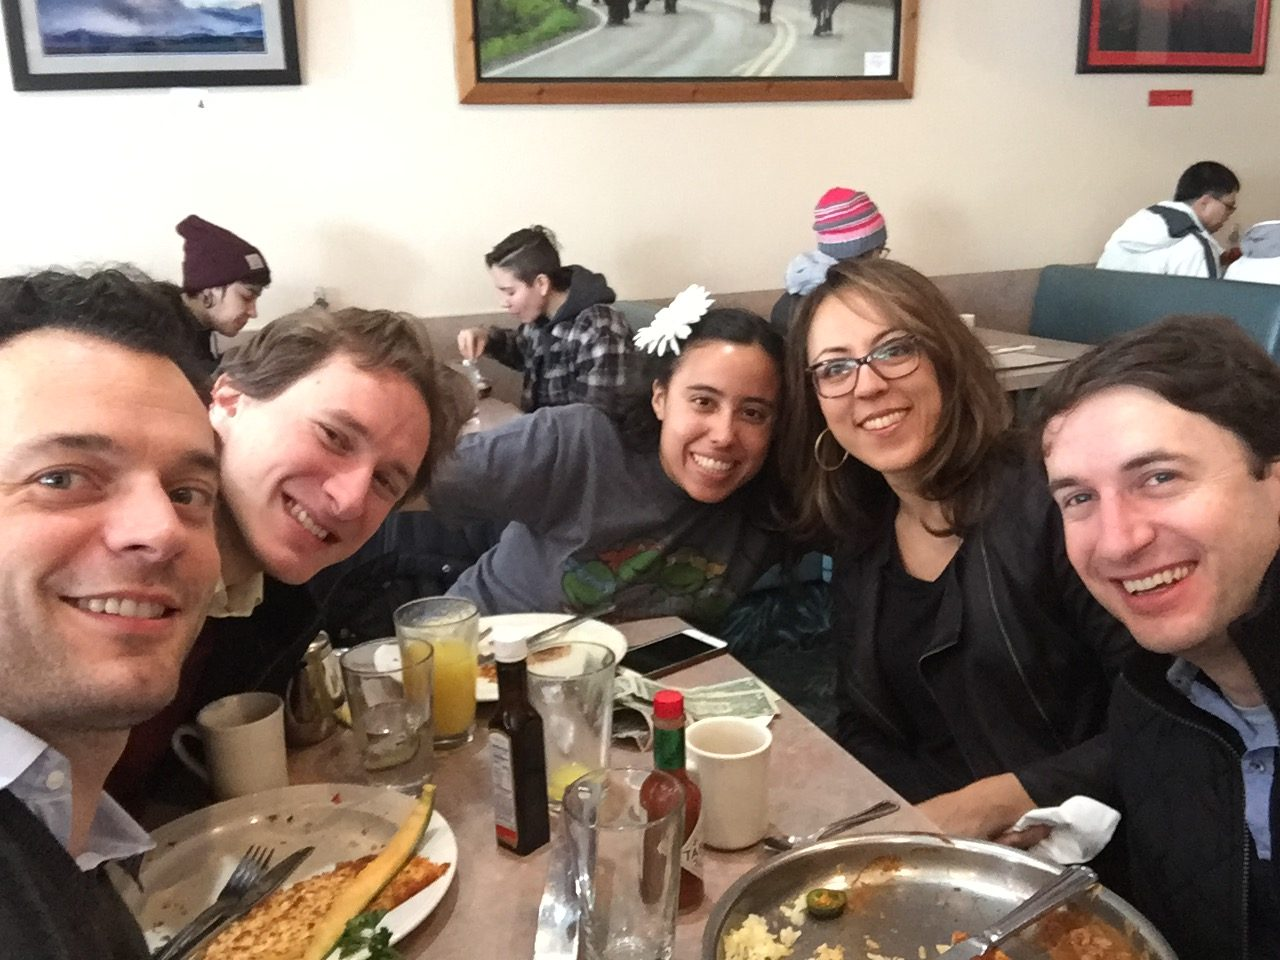 Breakfast with Josef Zpacek, Jessica Escobar, Tanya Bannister, and Noah Bendix-Balgley